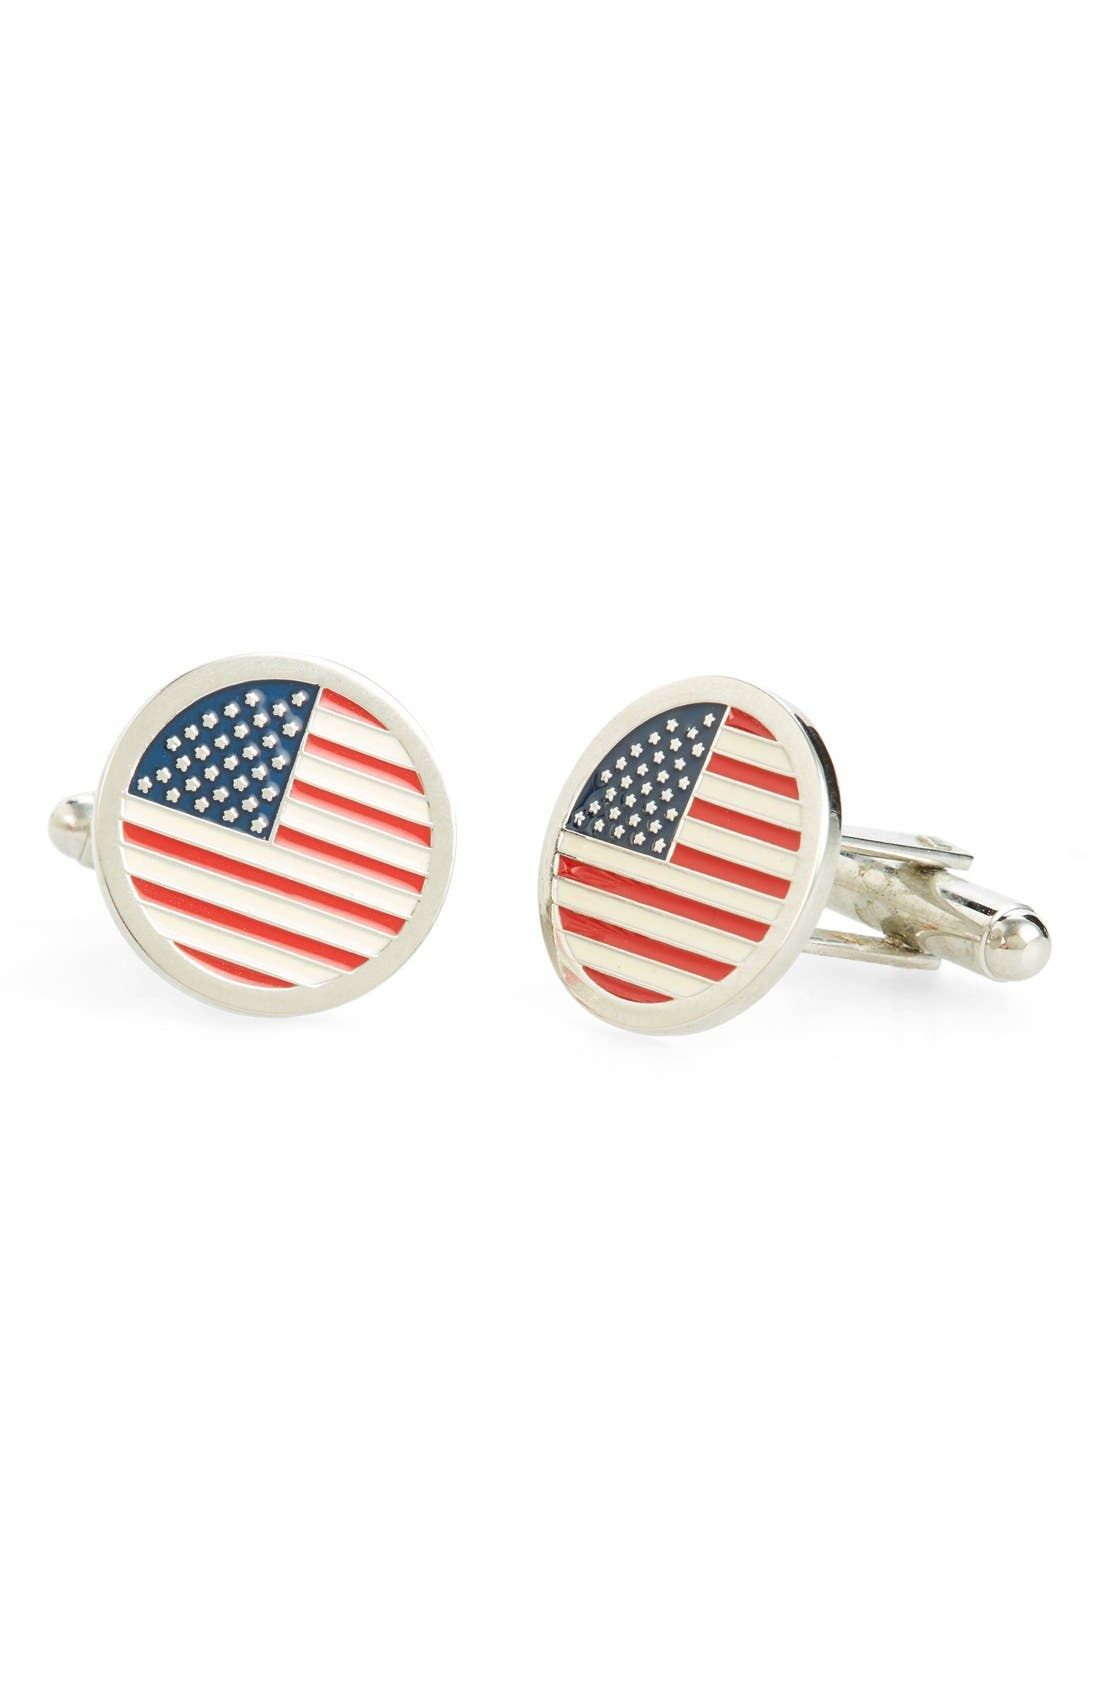 Alternate Image 1 Selected - LINK UP Round American Flag Cuff Links